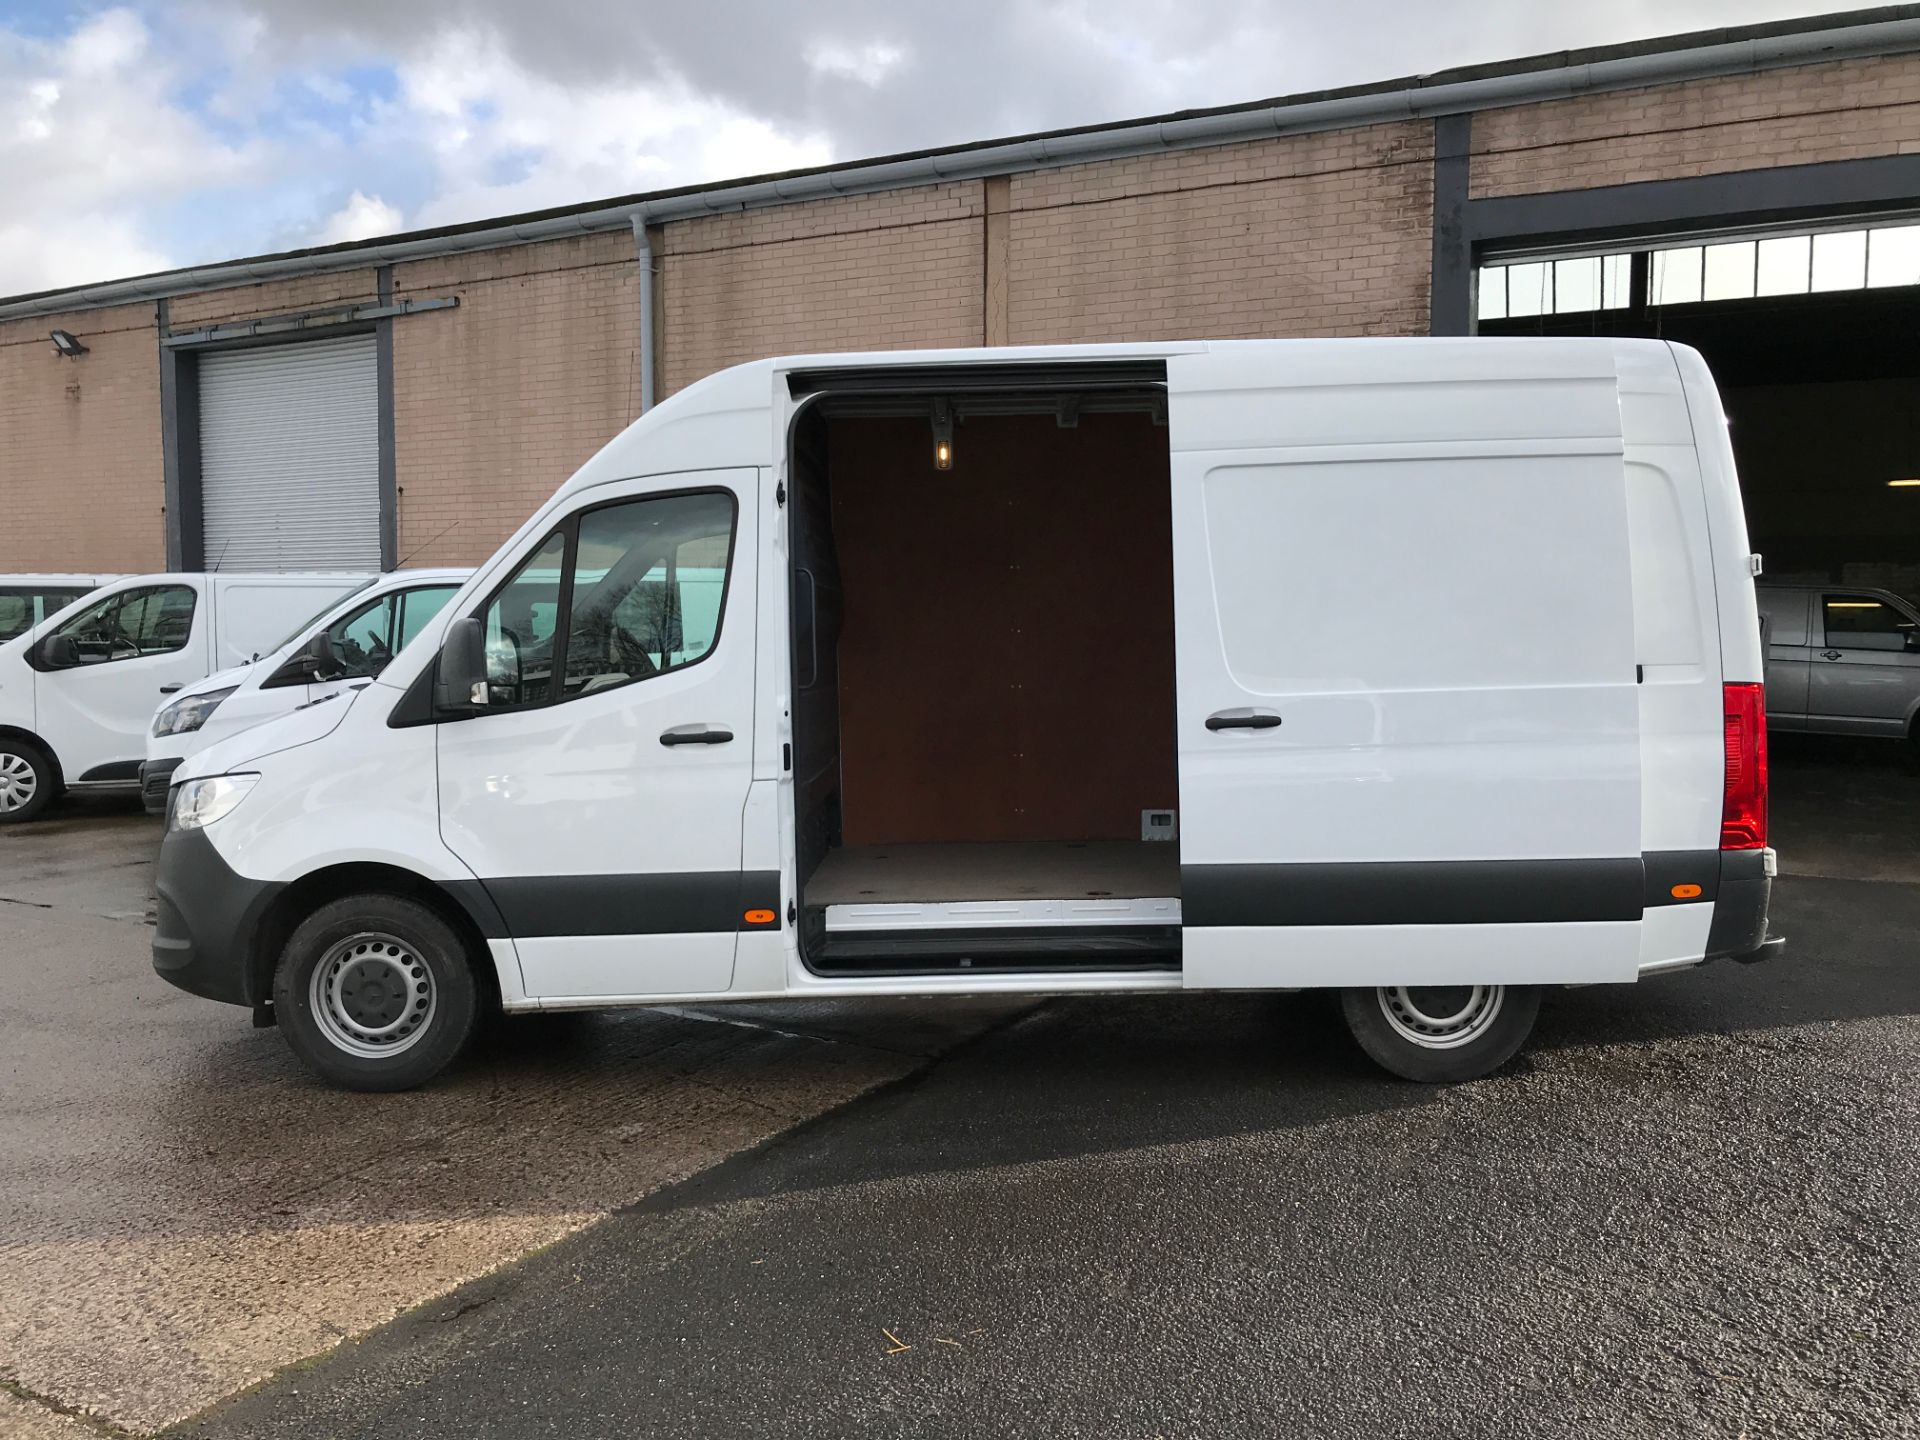 2018 Mercedes-Benz Sprinter 314CDI L2 H2 140PS EURO 6 (KM68UBL) Thumbnail 15